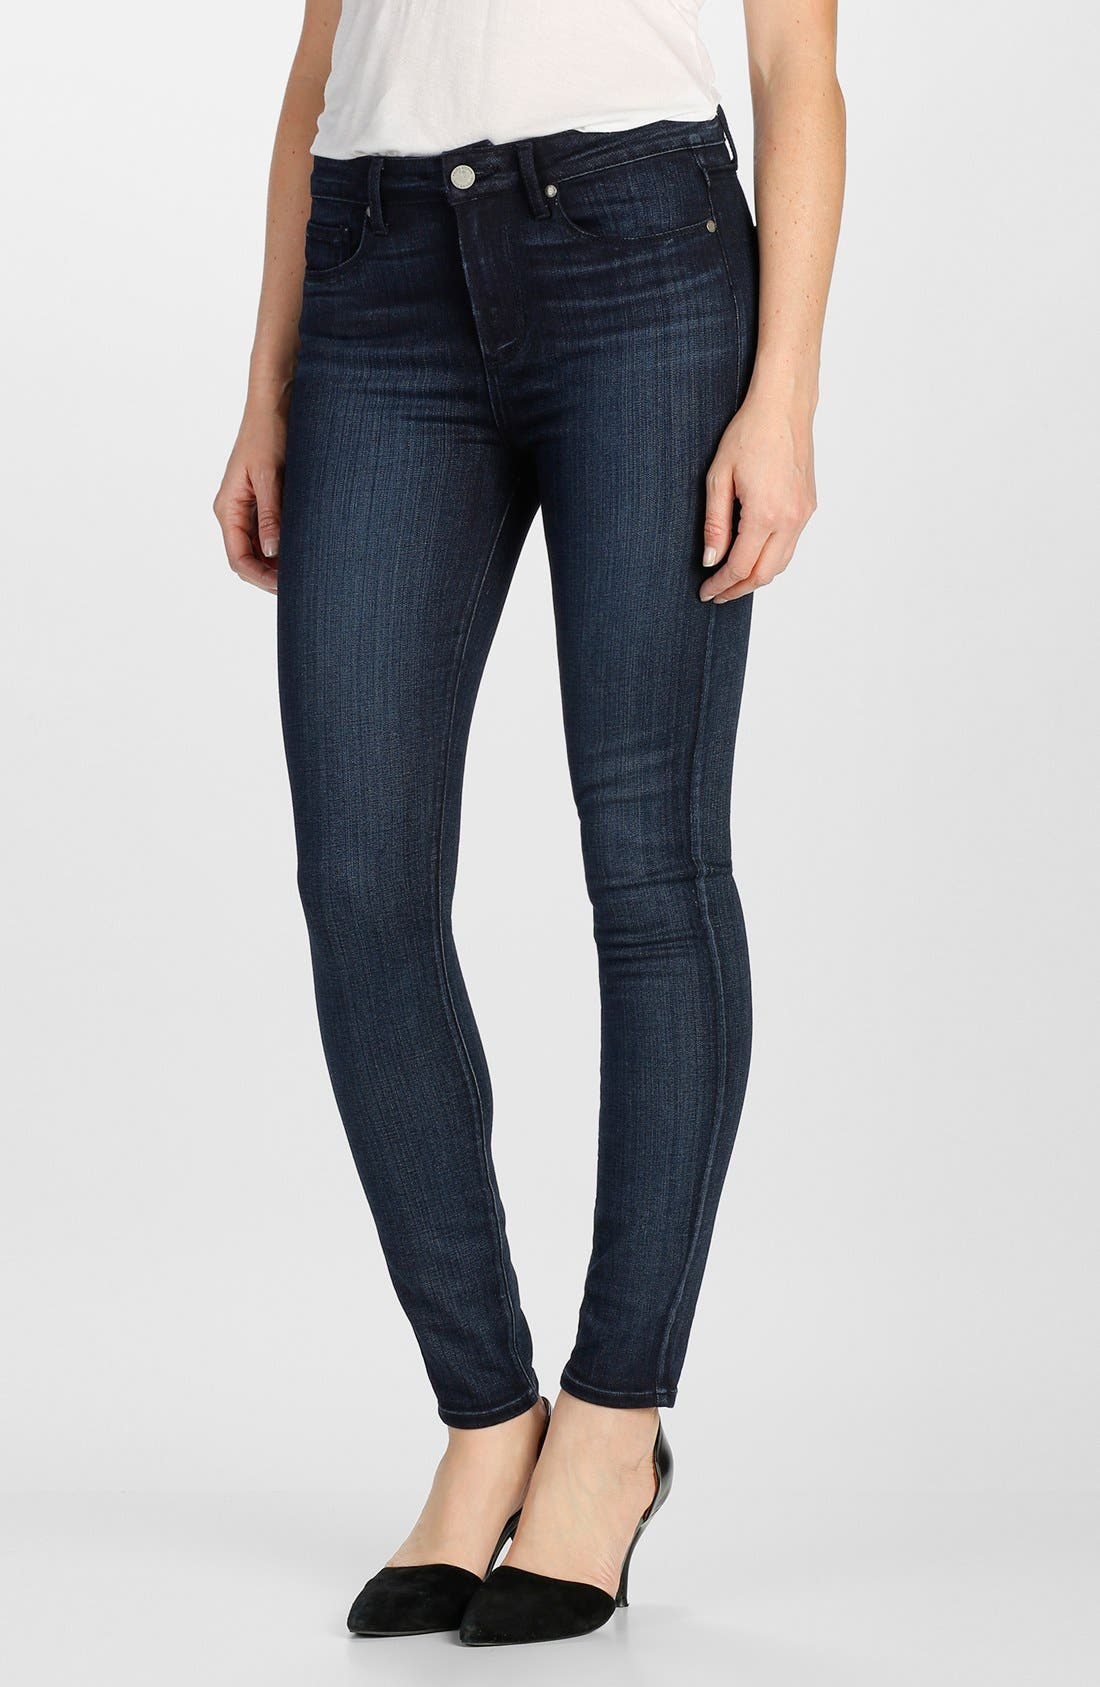 Alternate Image 1 Selected - Paige Denim 'Transcend - Hoxton' High Rise Ultra Skinny Jeans (Georgie)